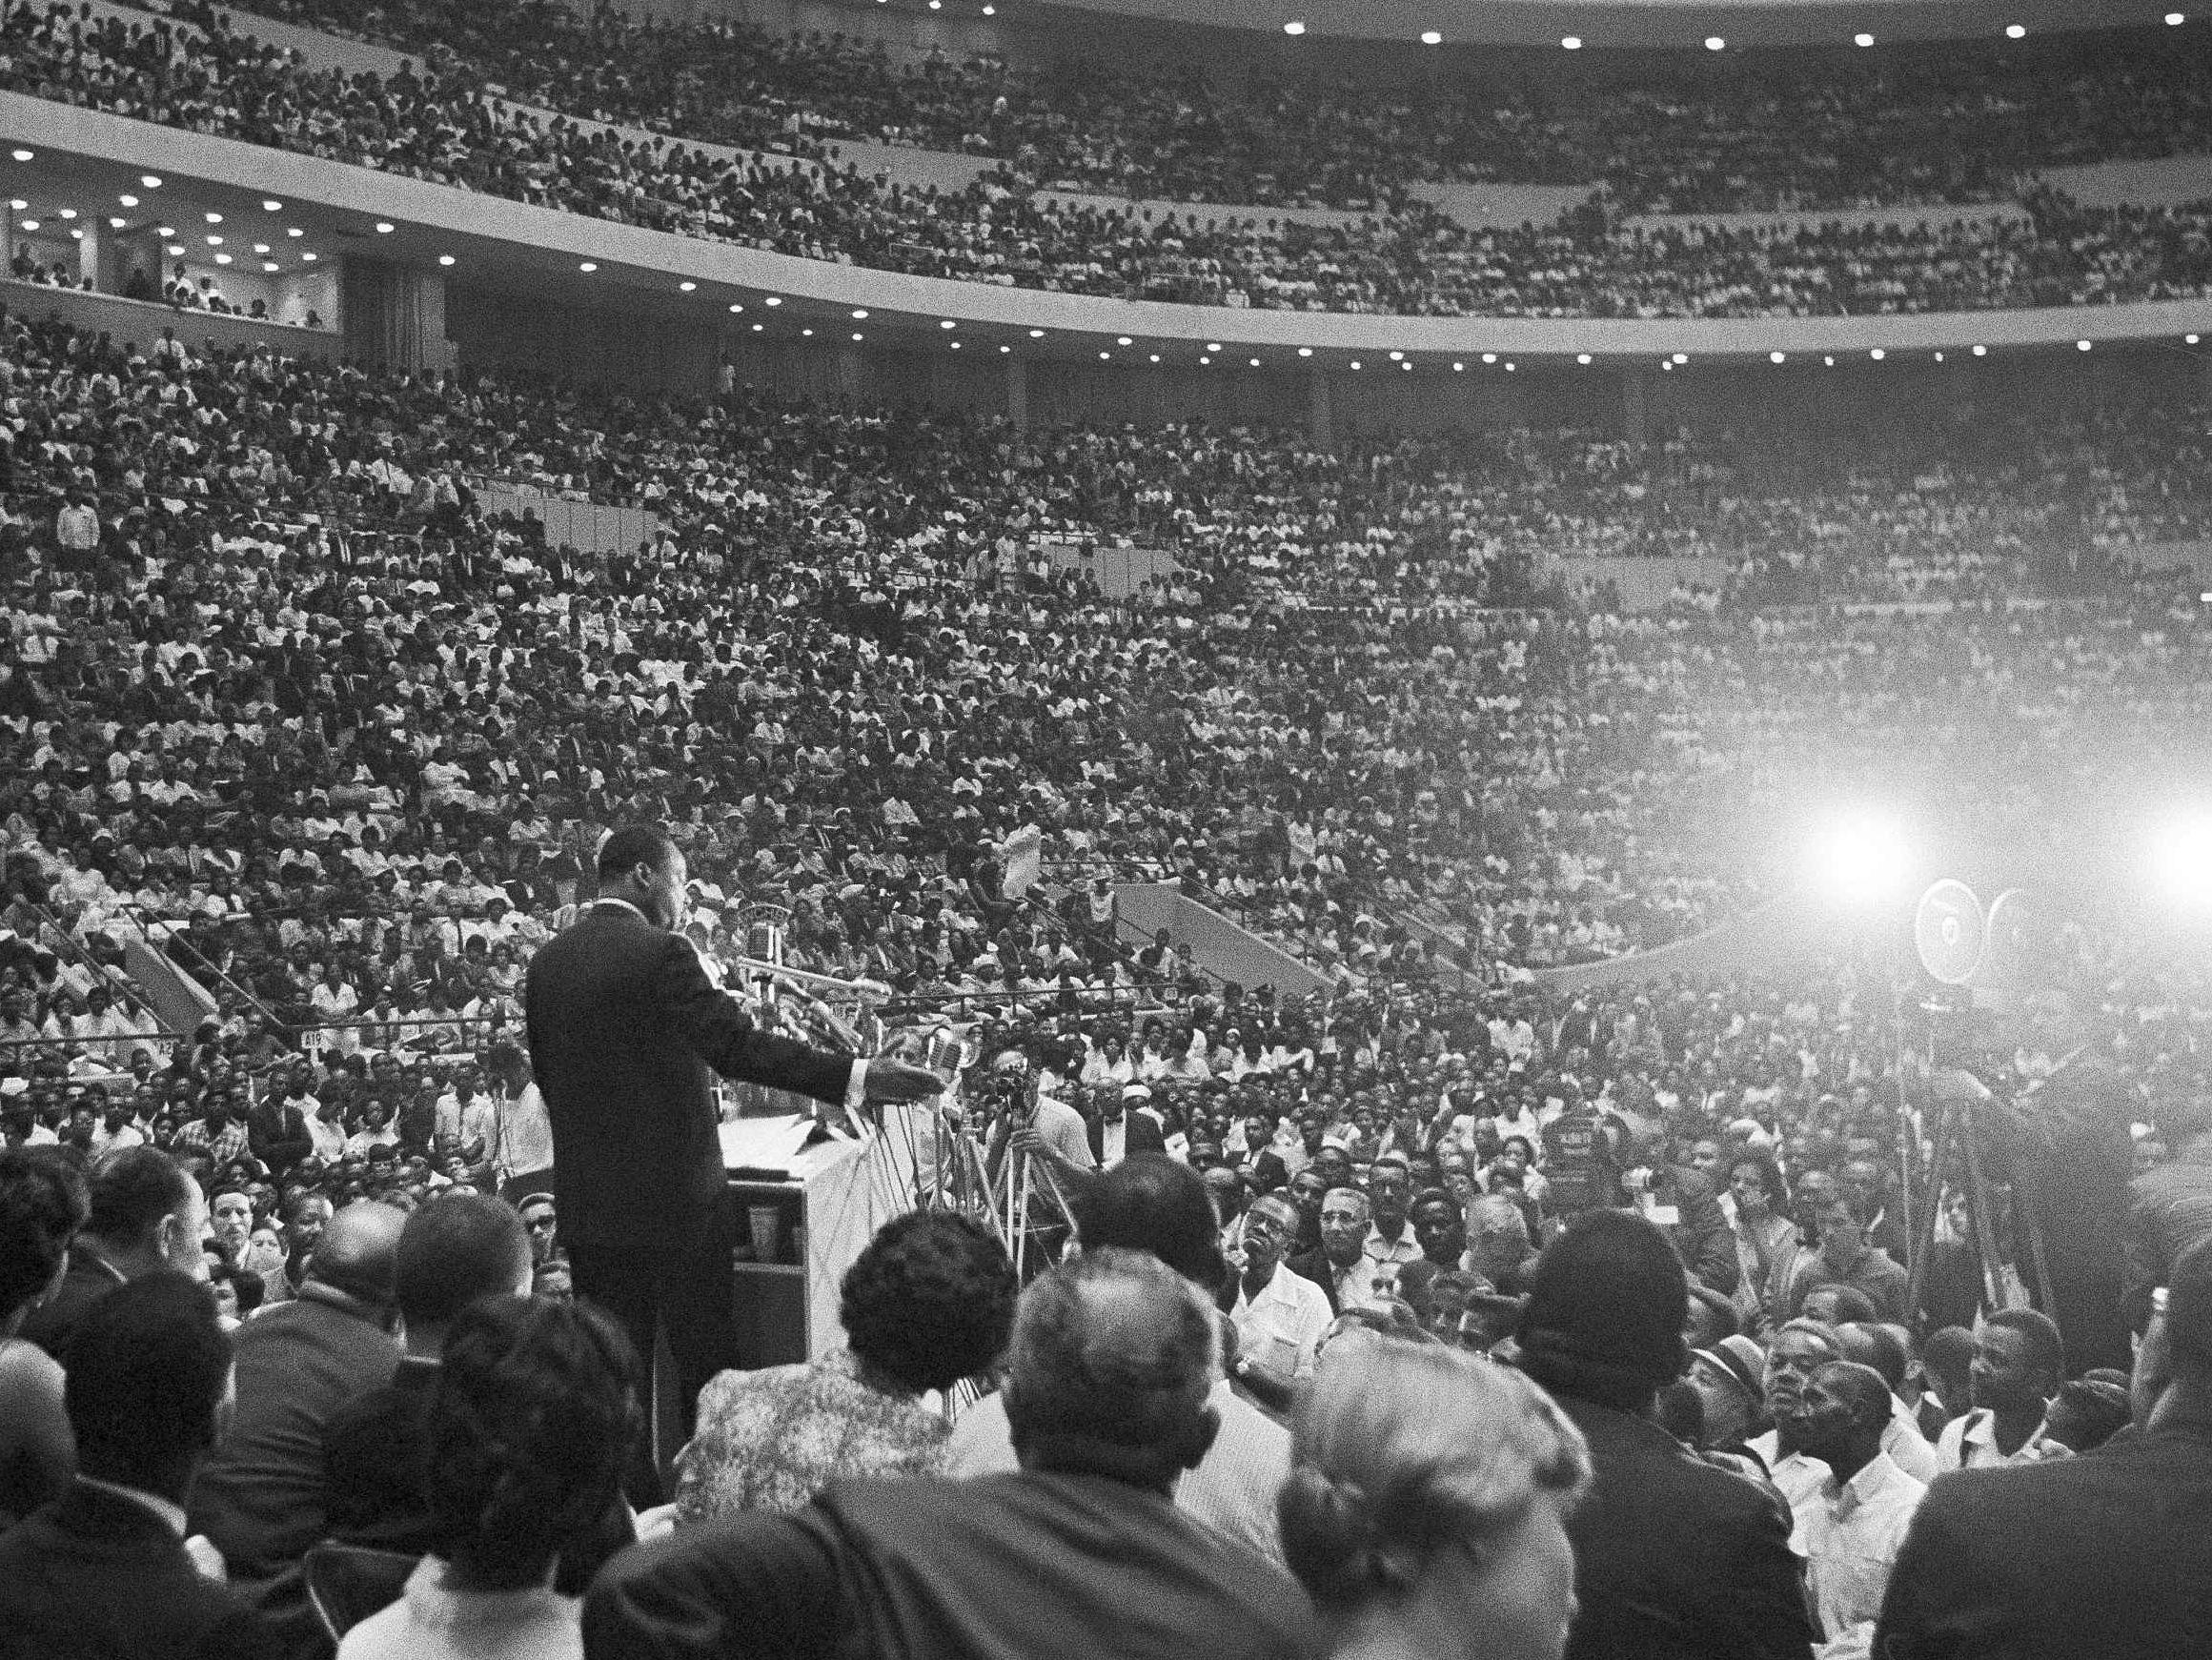 Deconstructing Martin Luther King, Jr.'s Dream